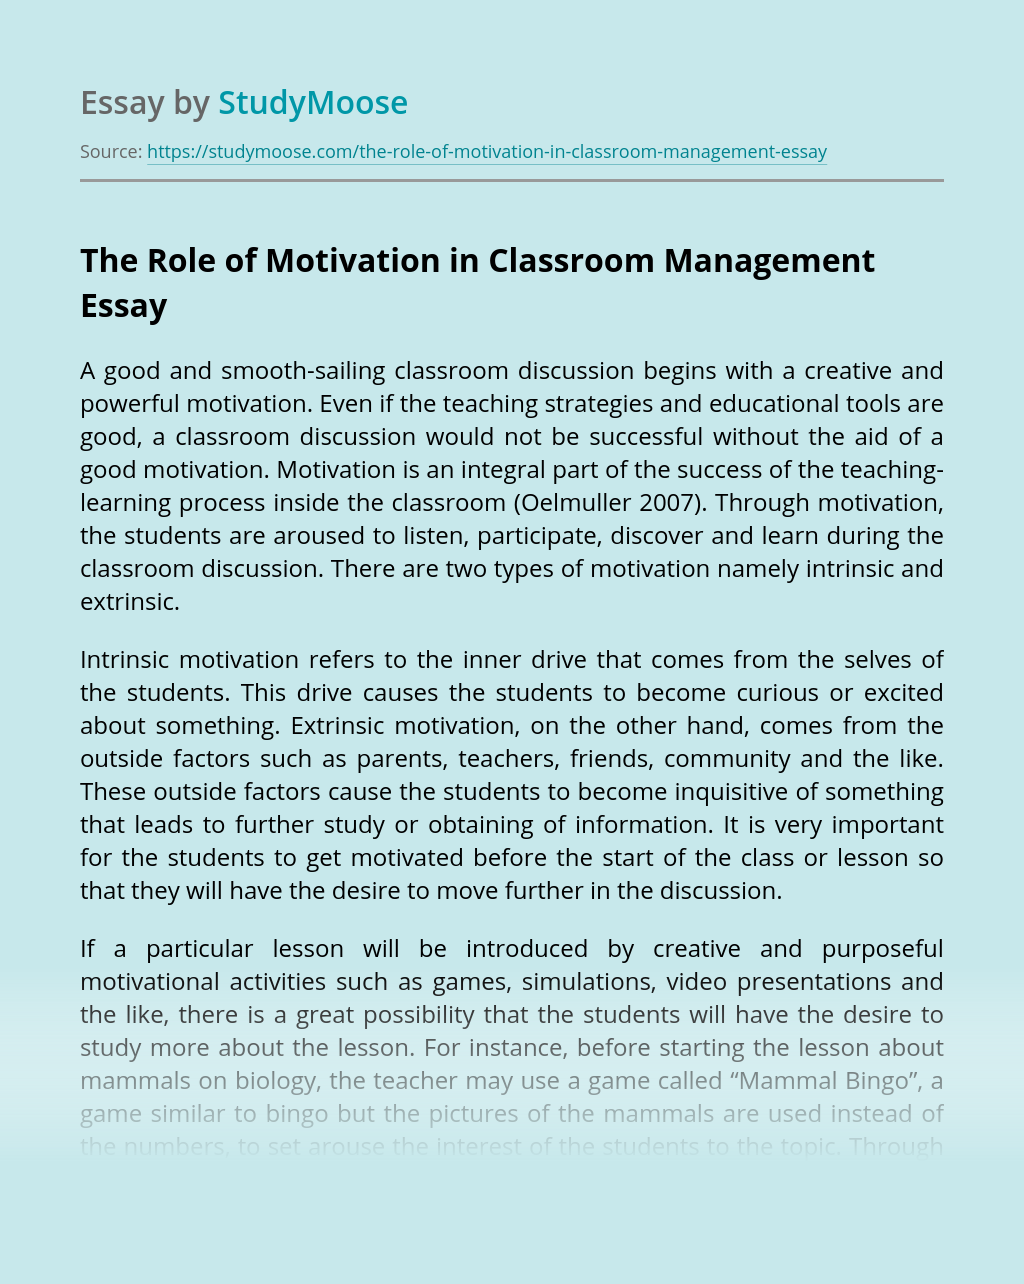 The Role of Motivation in Classroom Management